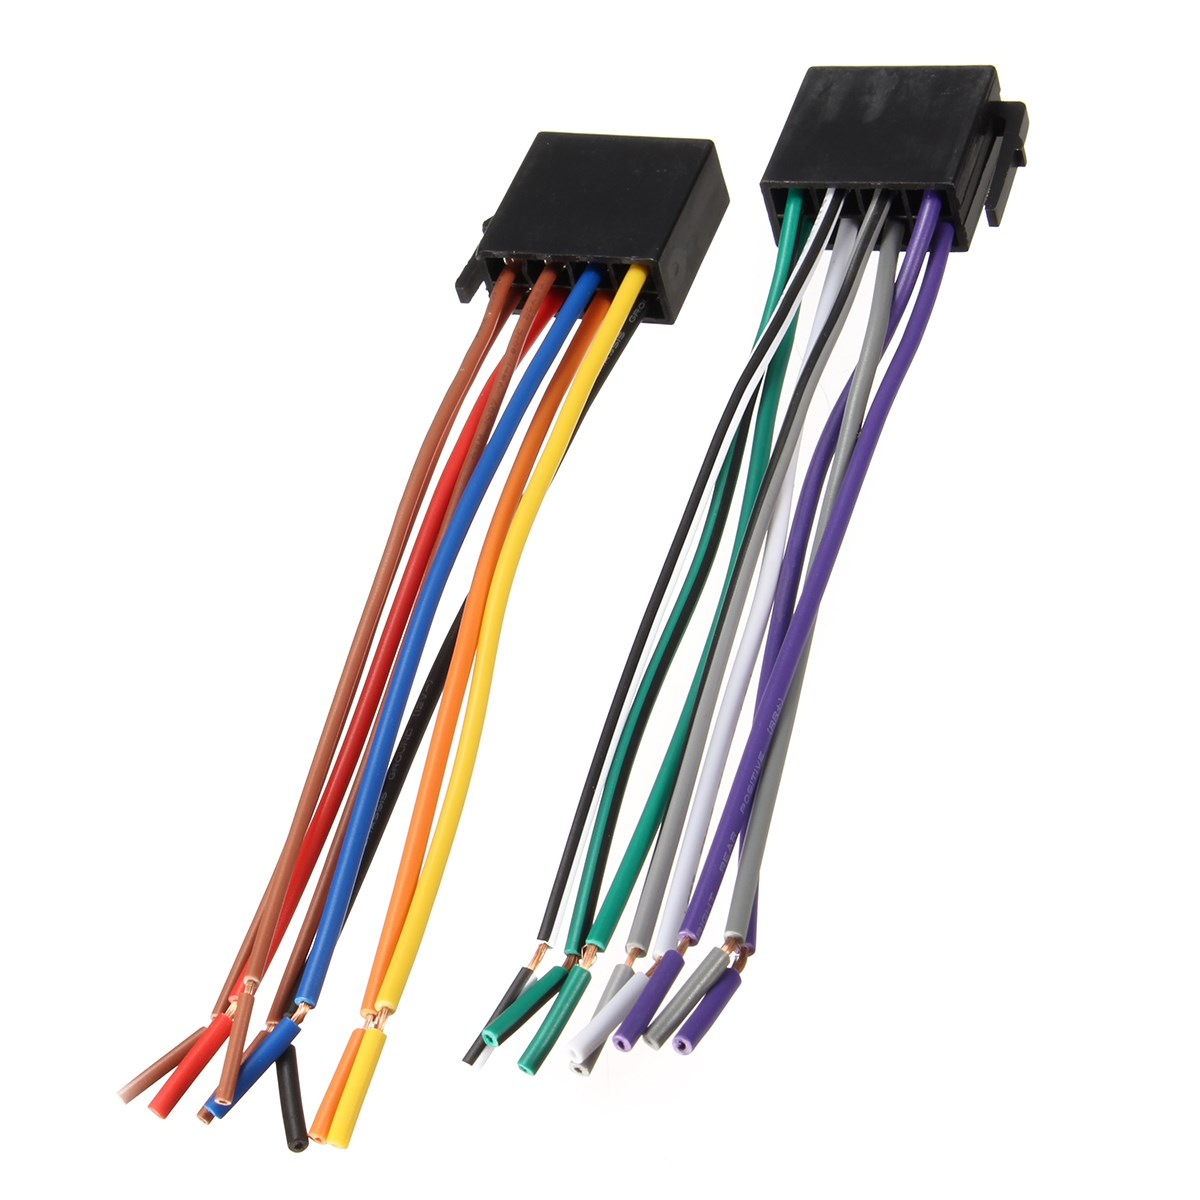 Universal Wire Harness Adapter Connector Cable Radio Wiring Connector Plug for Auto Car Stereo System universal wire harness adapter connector cable radio wiring universal wiring harness connector at readyjetset.co